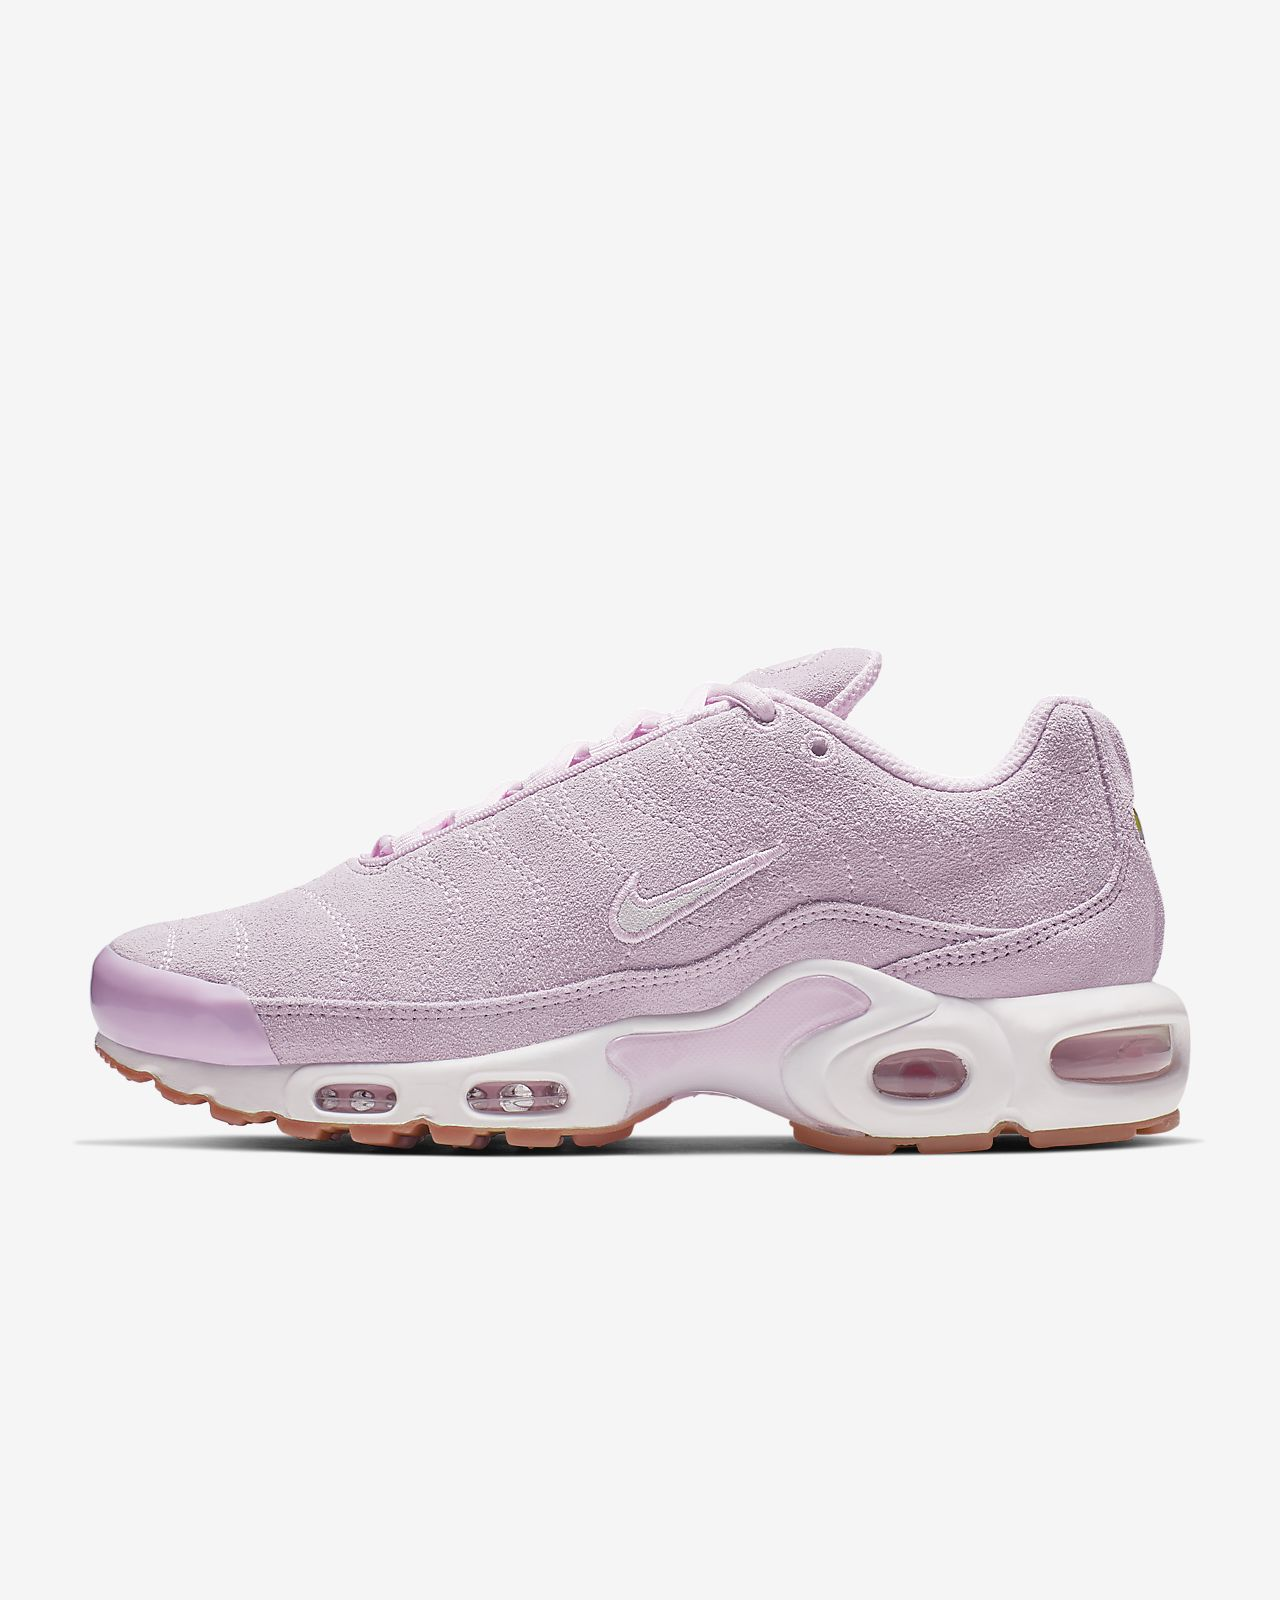 huge discount 80e1a 009cf ... Sko Nike Air Max Plus Premium för kvinnor